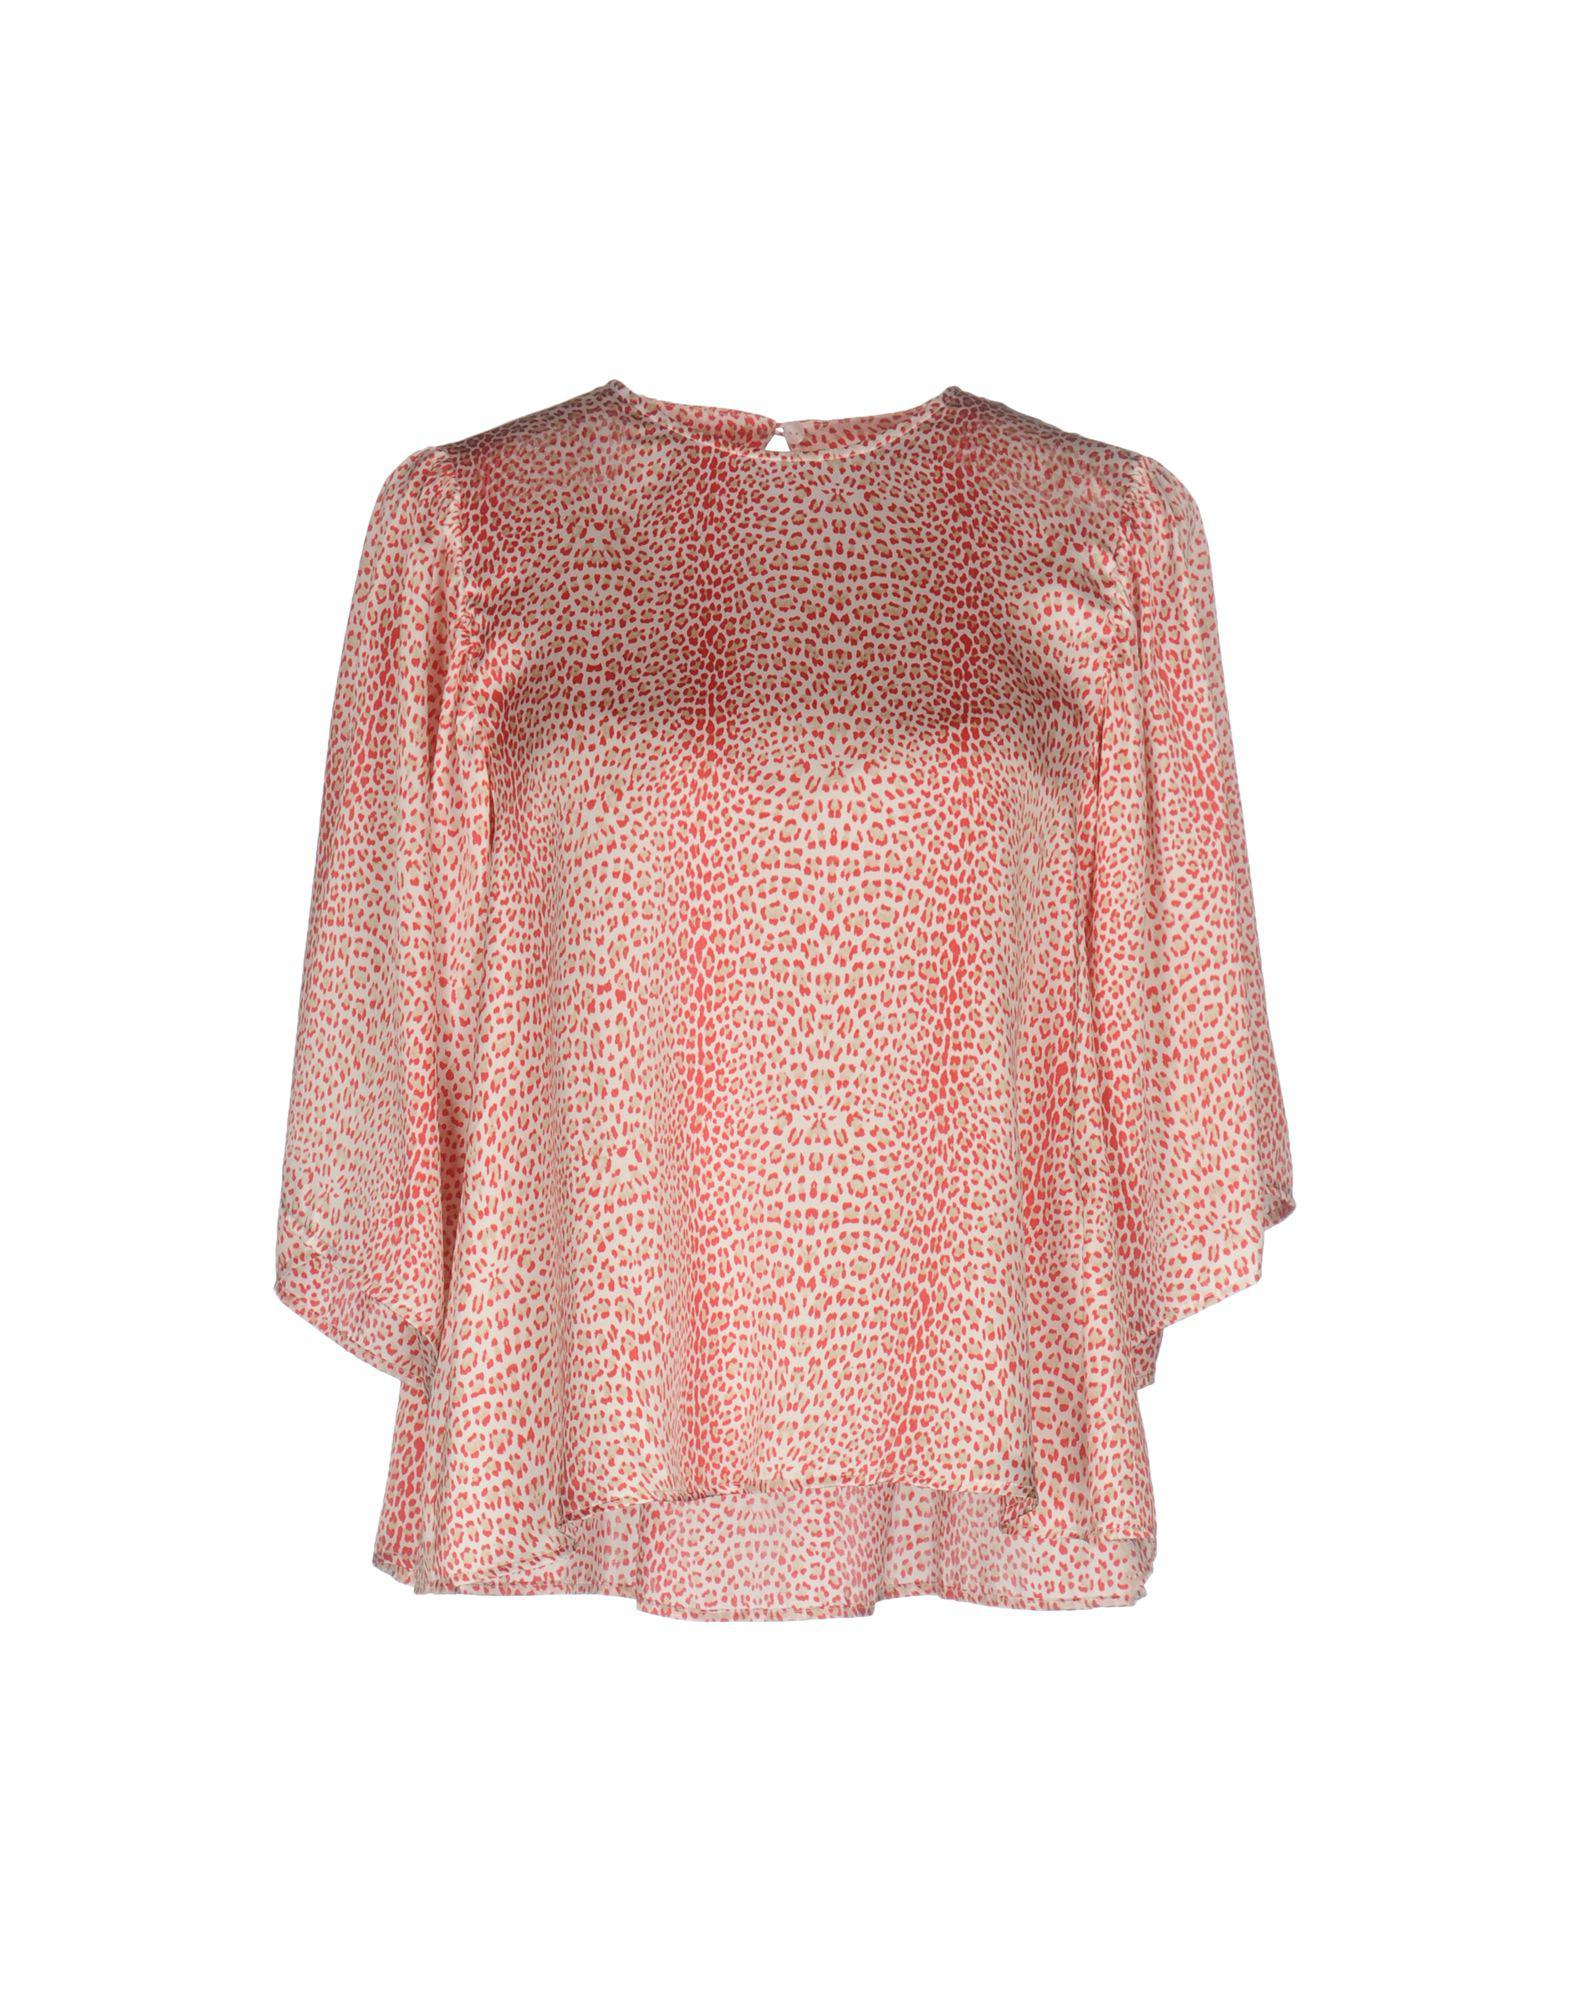 SHIRTS - Blouses Matthew Goodman Get The Latest Fashion In China Manchester For Sale TYRXLUIUI